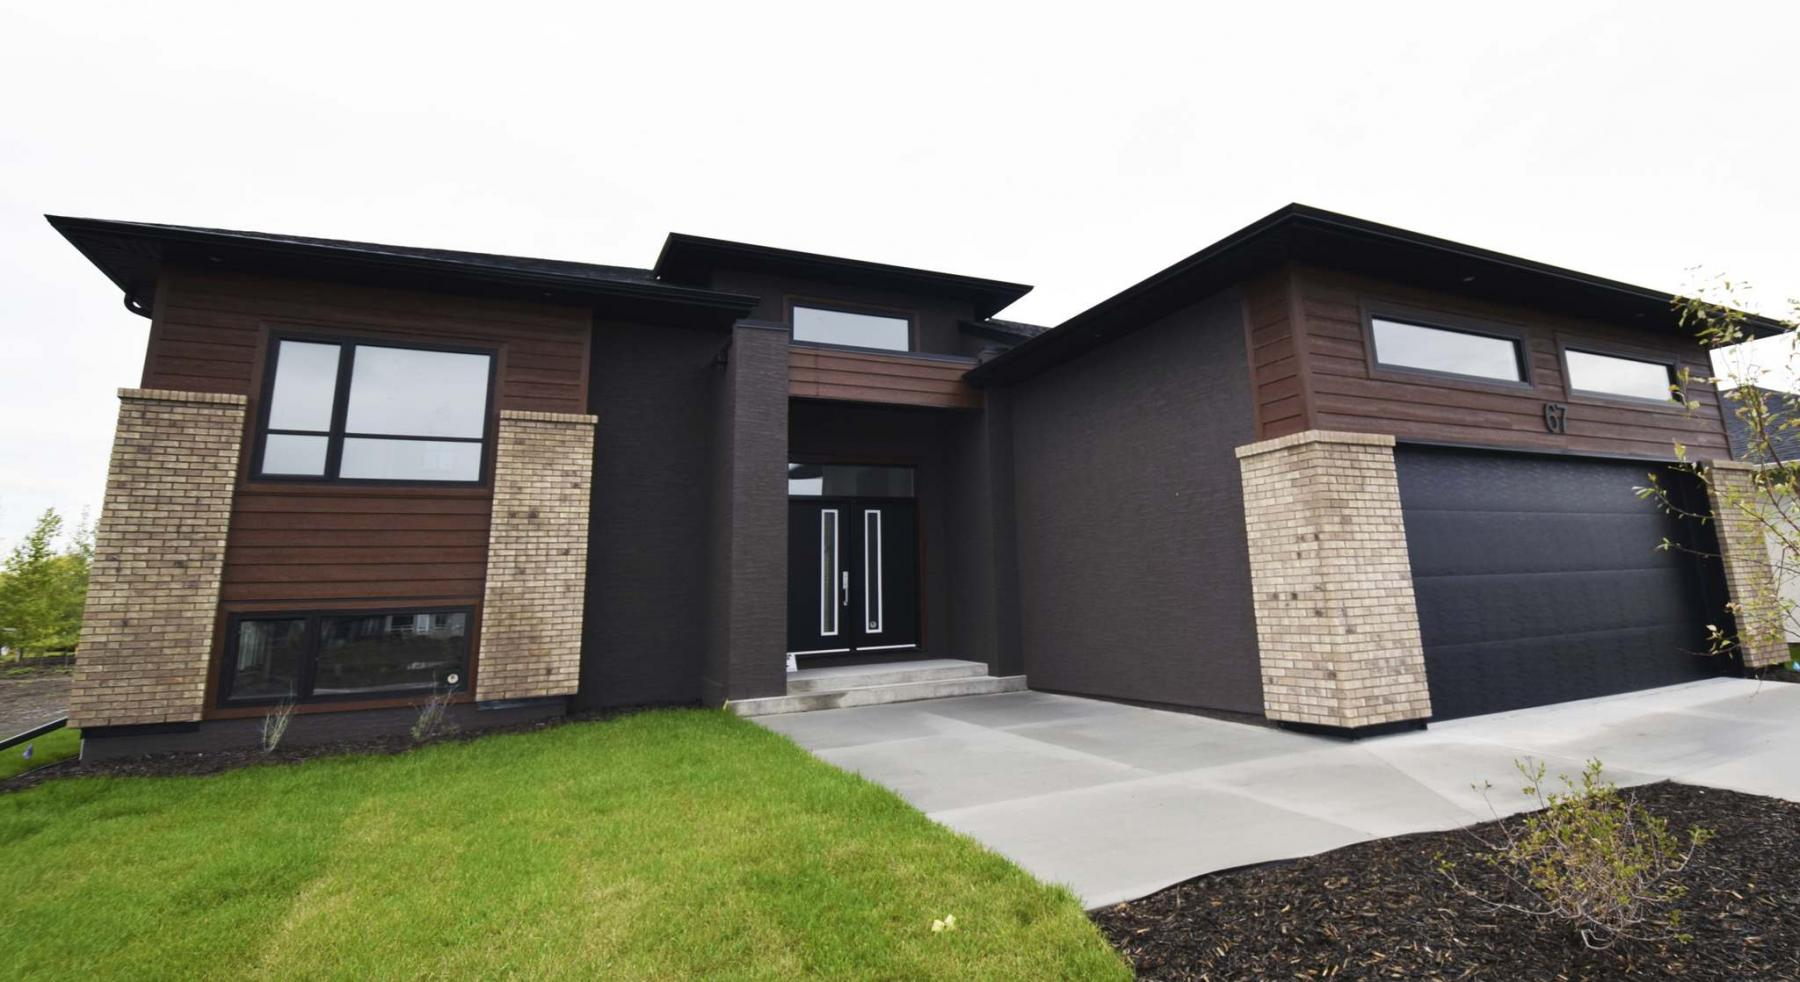 <p>Todd Lewys / Winnipeg Free Press files</p><p>As always, the award-winning show homes honoured at Friday's gala remain open for viewing, even after the Fall Parade of Homes.</p>